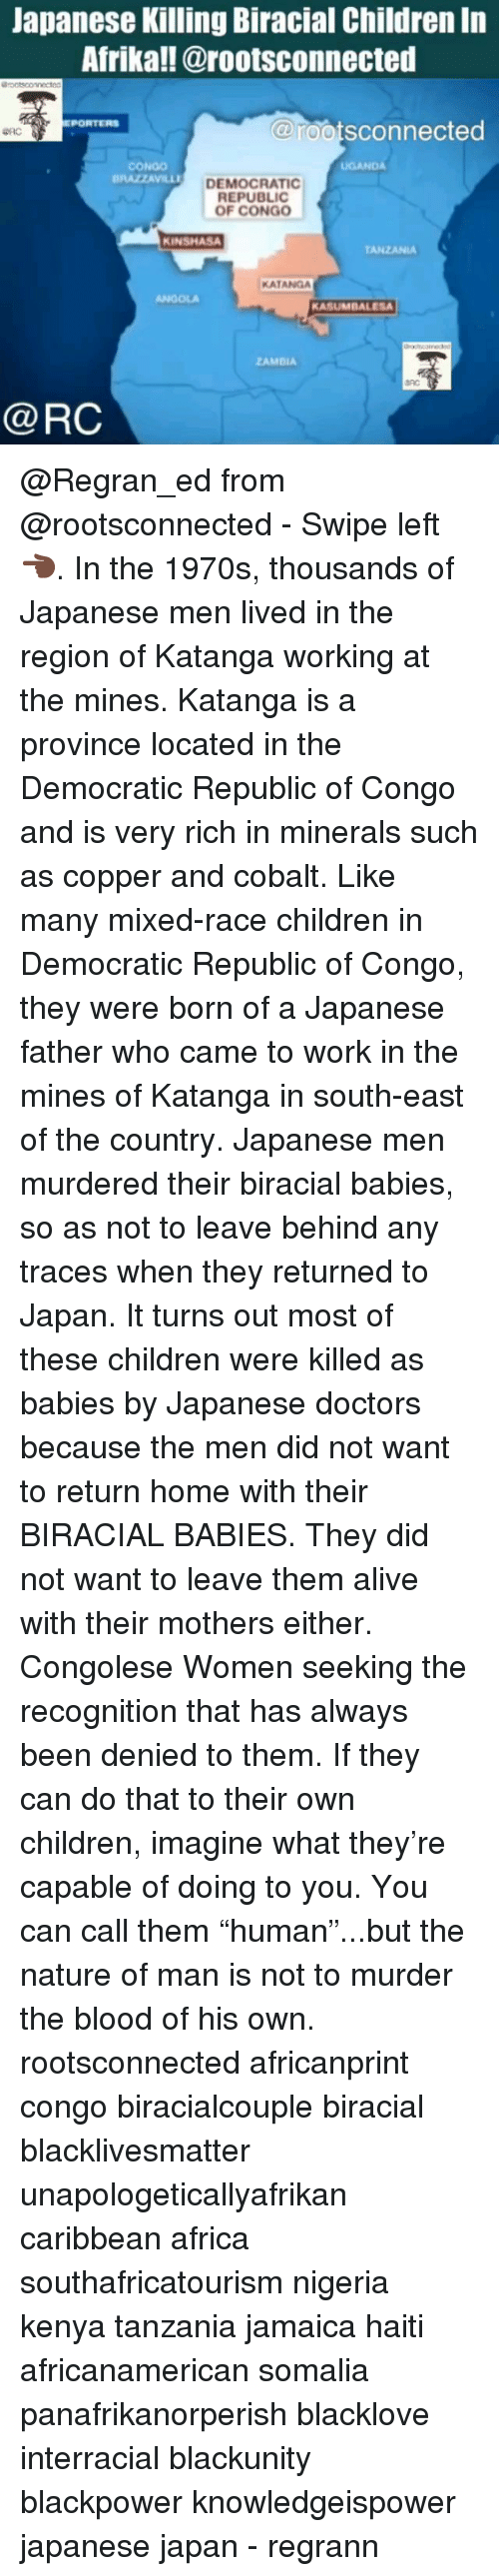 """Africa, Alive, and Black Lives Matter: Japanese Killing Biracial Children In  Afrika!!@rootsconnected  @rootsconnected  PORTERS  CONGO  UGANDA  DEMOCRATIC  REPUBLIC  OF CONGo  KINSHASA  TANZANIA  KATANGA  ANOOLA  KASUMBALESA  @RC @Regran_ed from @rootsconnected - Swipe left 👈🏿. In the 1970s, thousands of Japanese men lived in the region of Katanga working at the mines. Katanga is a province located in the Democratic Republic of Congo and is very rich in minerals such as copper and cobalt. Like many mixed-race children in Democratic Republic of Congo, they were born of a Japanese father who came to work in the mines of Katanga in south-east of the country. Japanese men murdered their biracial babies, so as not to leave behind any traces when they returned to Japan. It turns out most of these children were killed as babies by Japanese doctors because the men did not want to return home with their BIRACIAL BABIES. They did not want to leave them alive with their mothers either. Congolese Women seeking the recognition that has always been denied to them. If they can do that to their own children, imagine what they're capable of doing to you. You can call them """"human""""...but the nature of man is not to murder the blood of his own. rootsconnected africanprint congo biracialcouple biracial blacklivesmatter unapologeticallyafrikan caribbean africa southafricatourism nigeria kenya tanzania jamaica haiti africanamerican somalia panafrikanorperish blacklove interracial blackunity blackpower knowledgeispower japanese japan - regrann"""